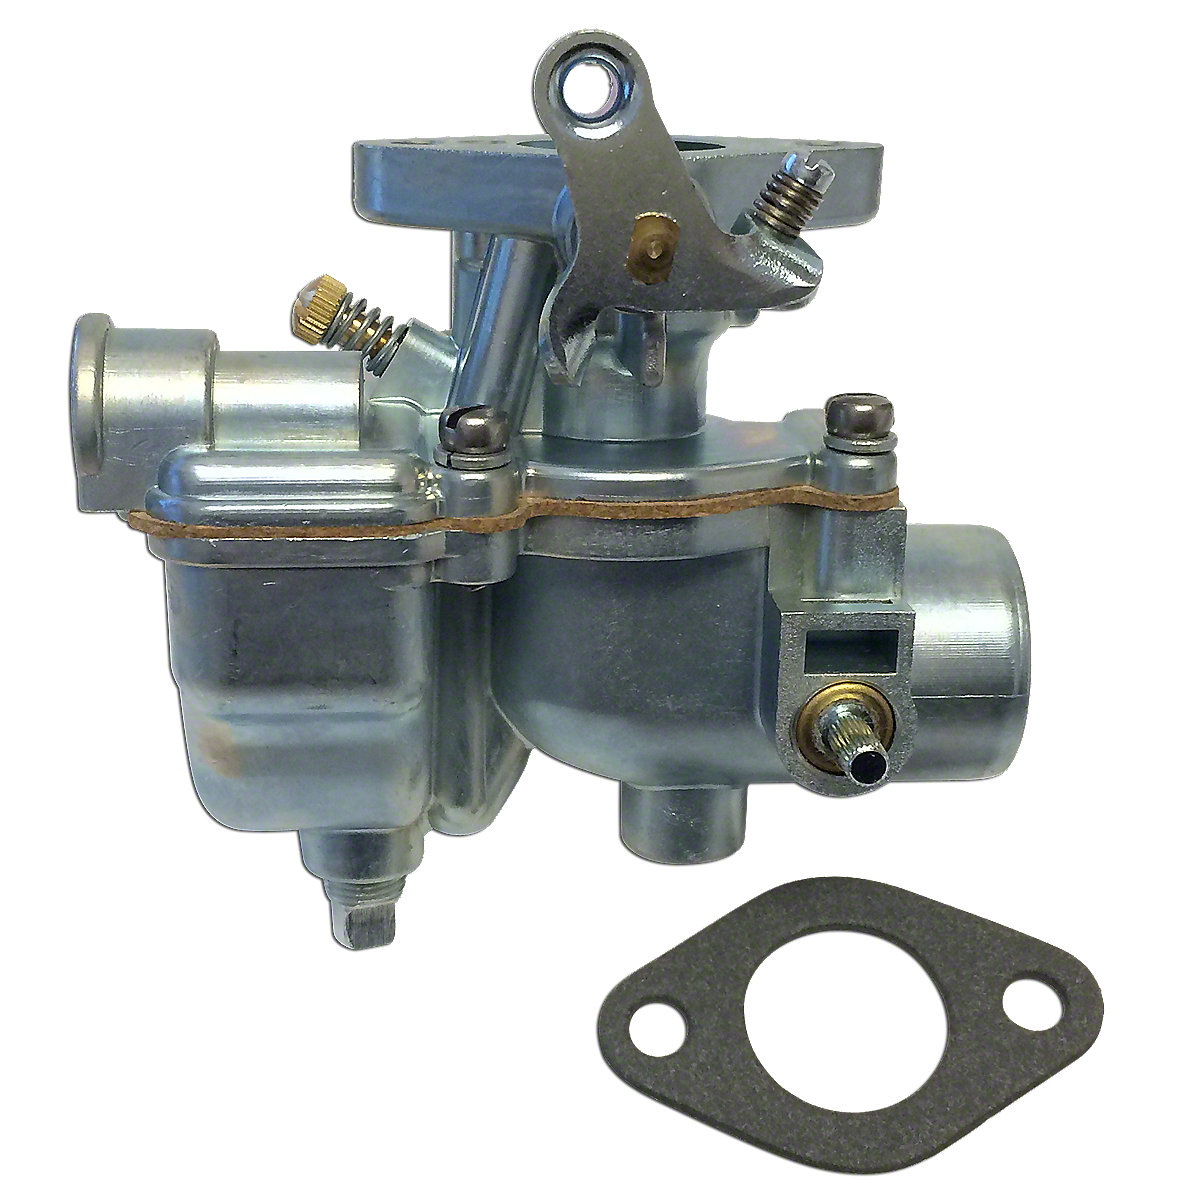 IHS738 Farmall Cub Carburetor